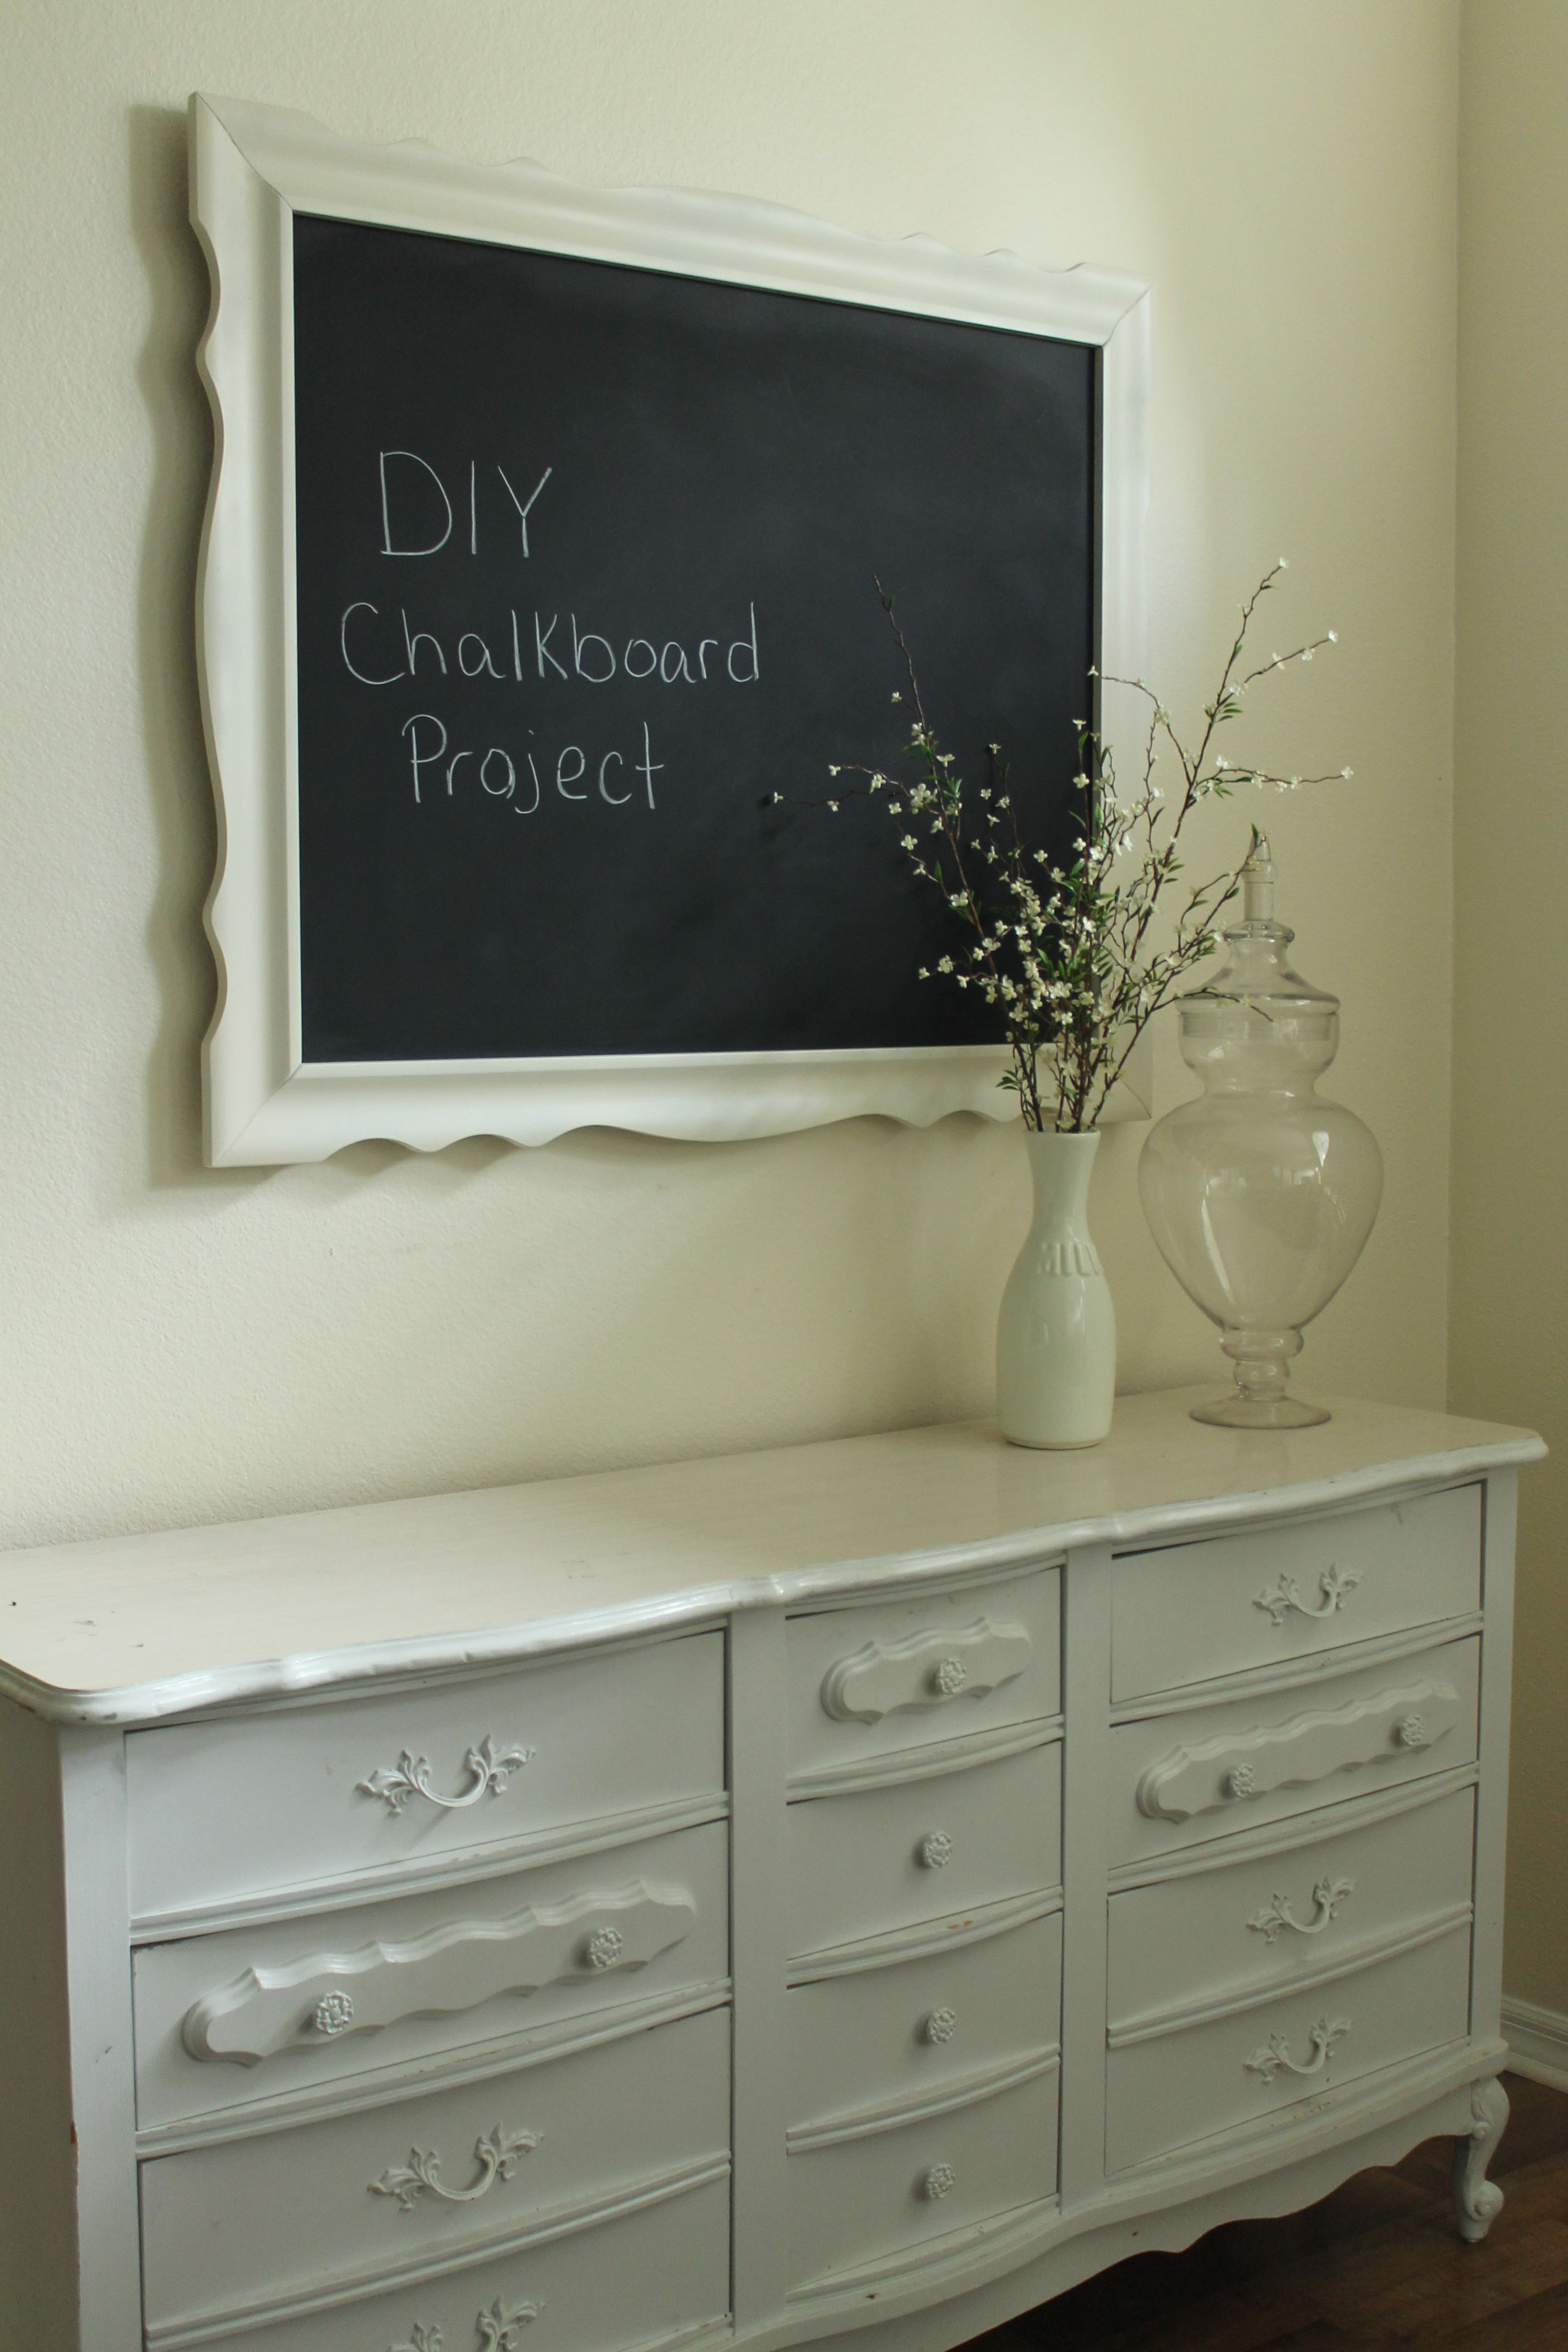 Thrift Dresser Used As Dining Room Buffet 62 Mirror Turned Into A Chalkboard 15 Total Cost With Accessories 100